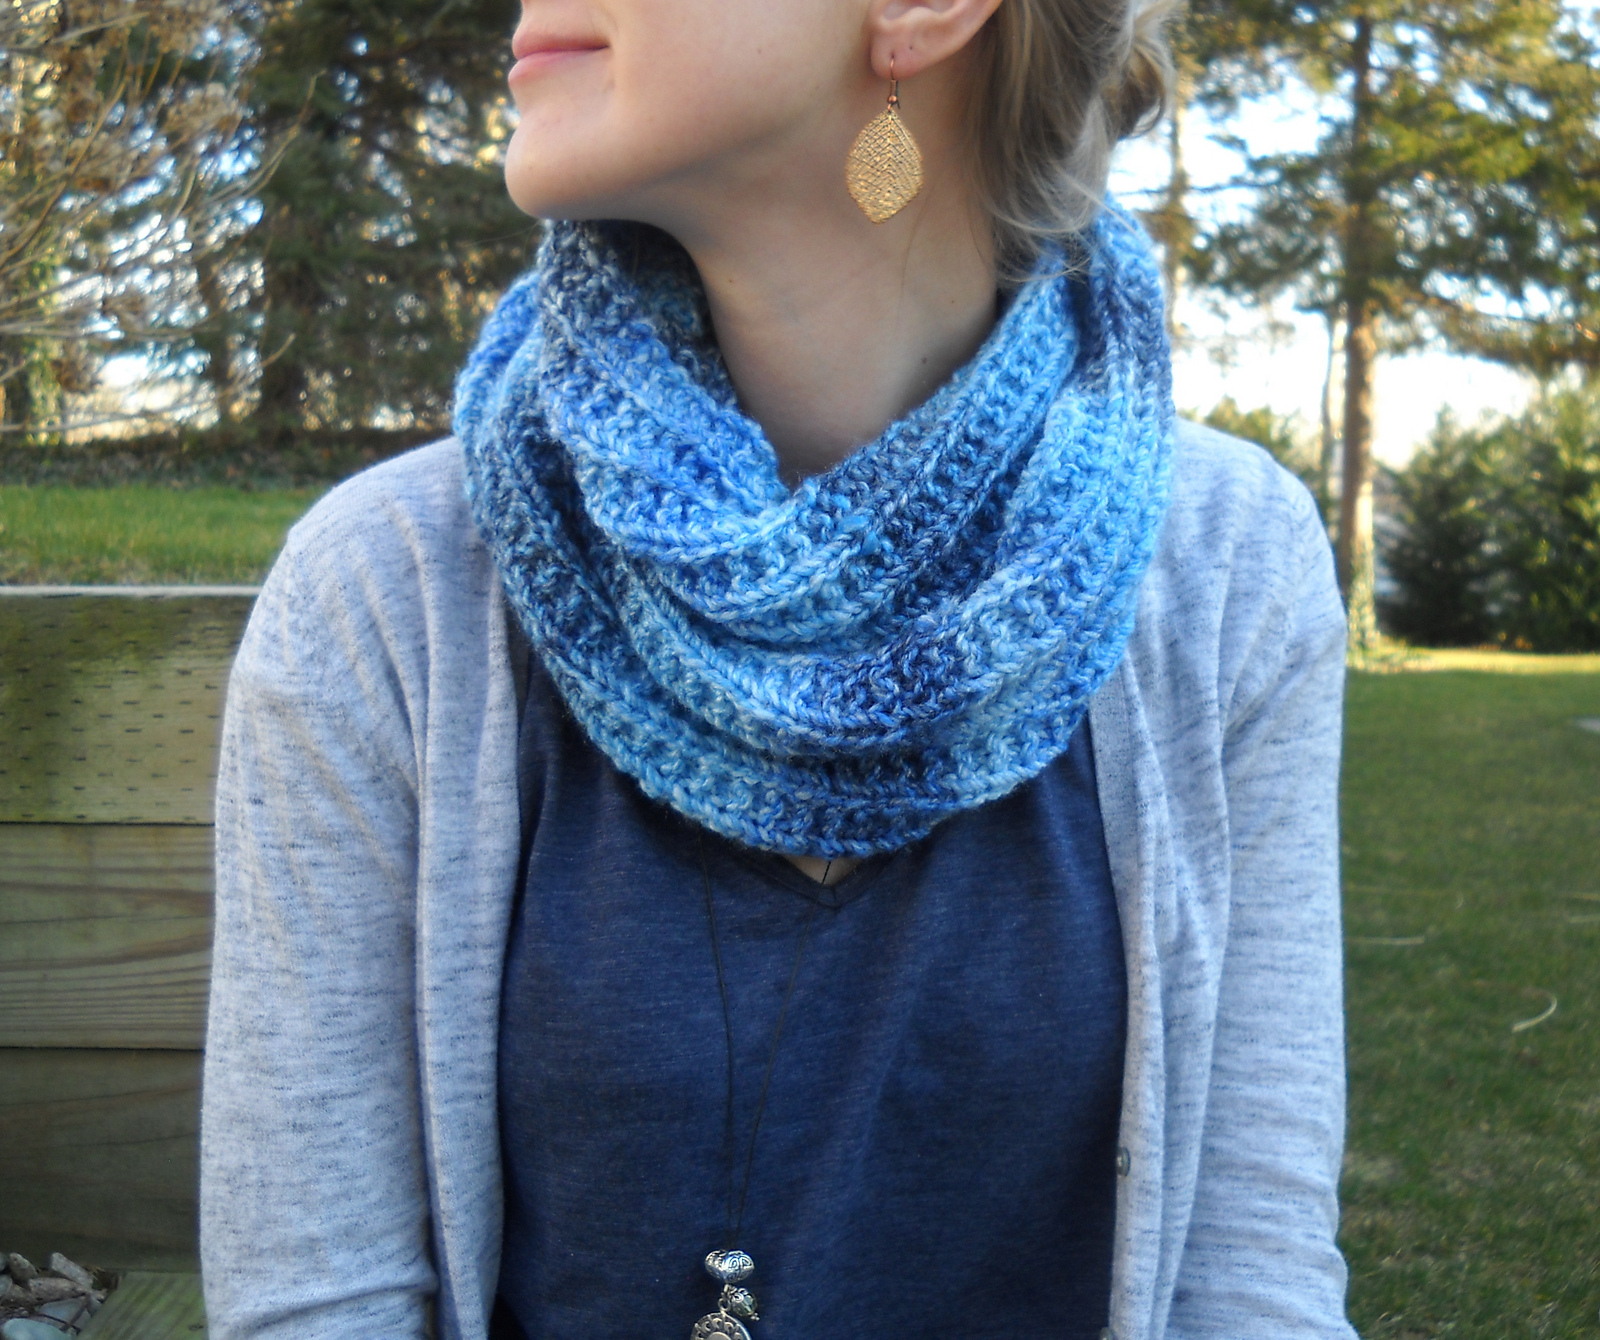 wiseknits: Blues Infinity Scarf - Free Pattern!